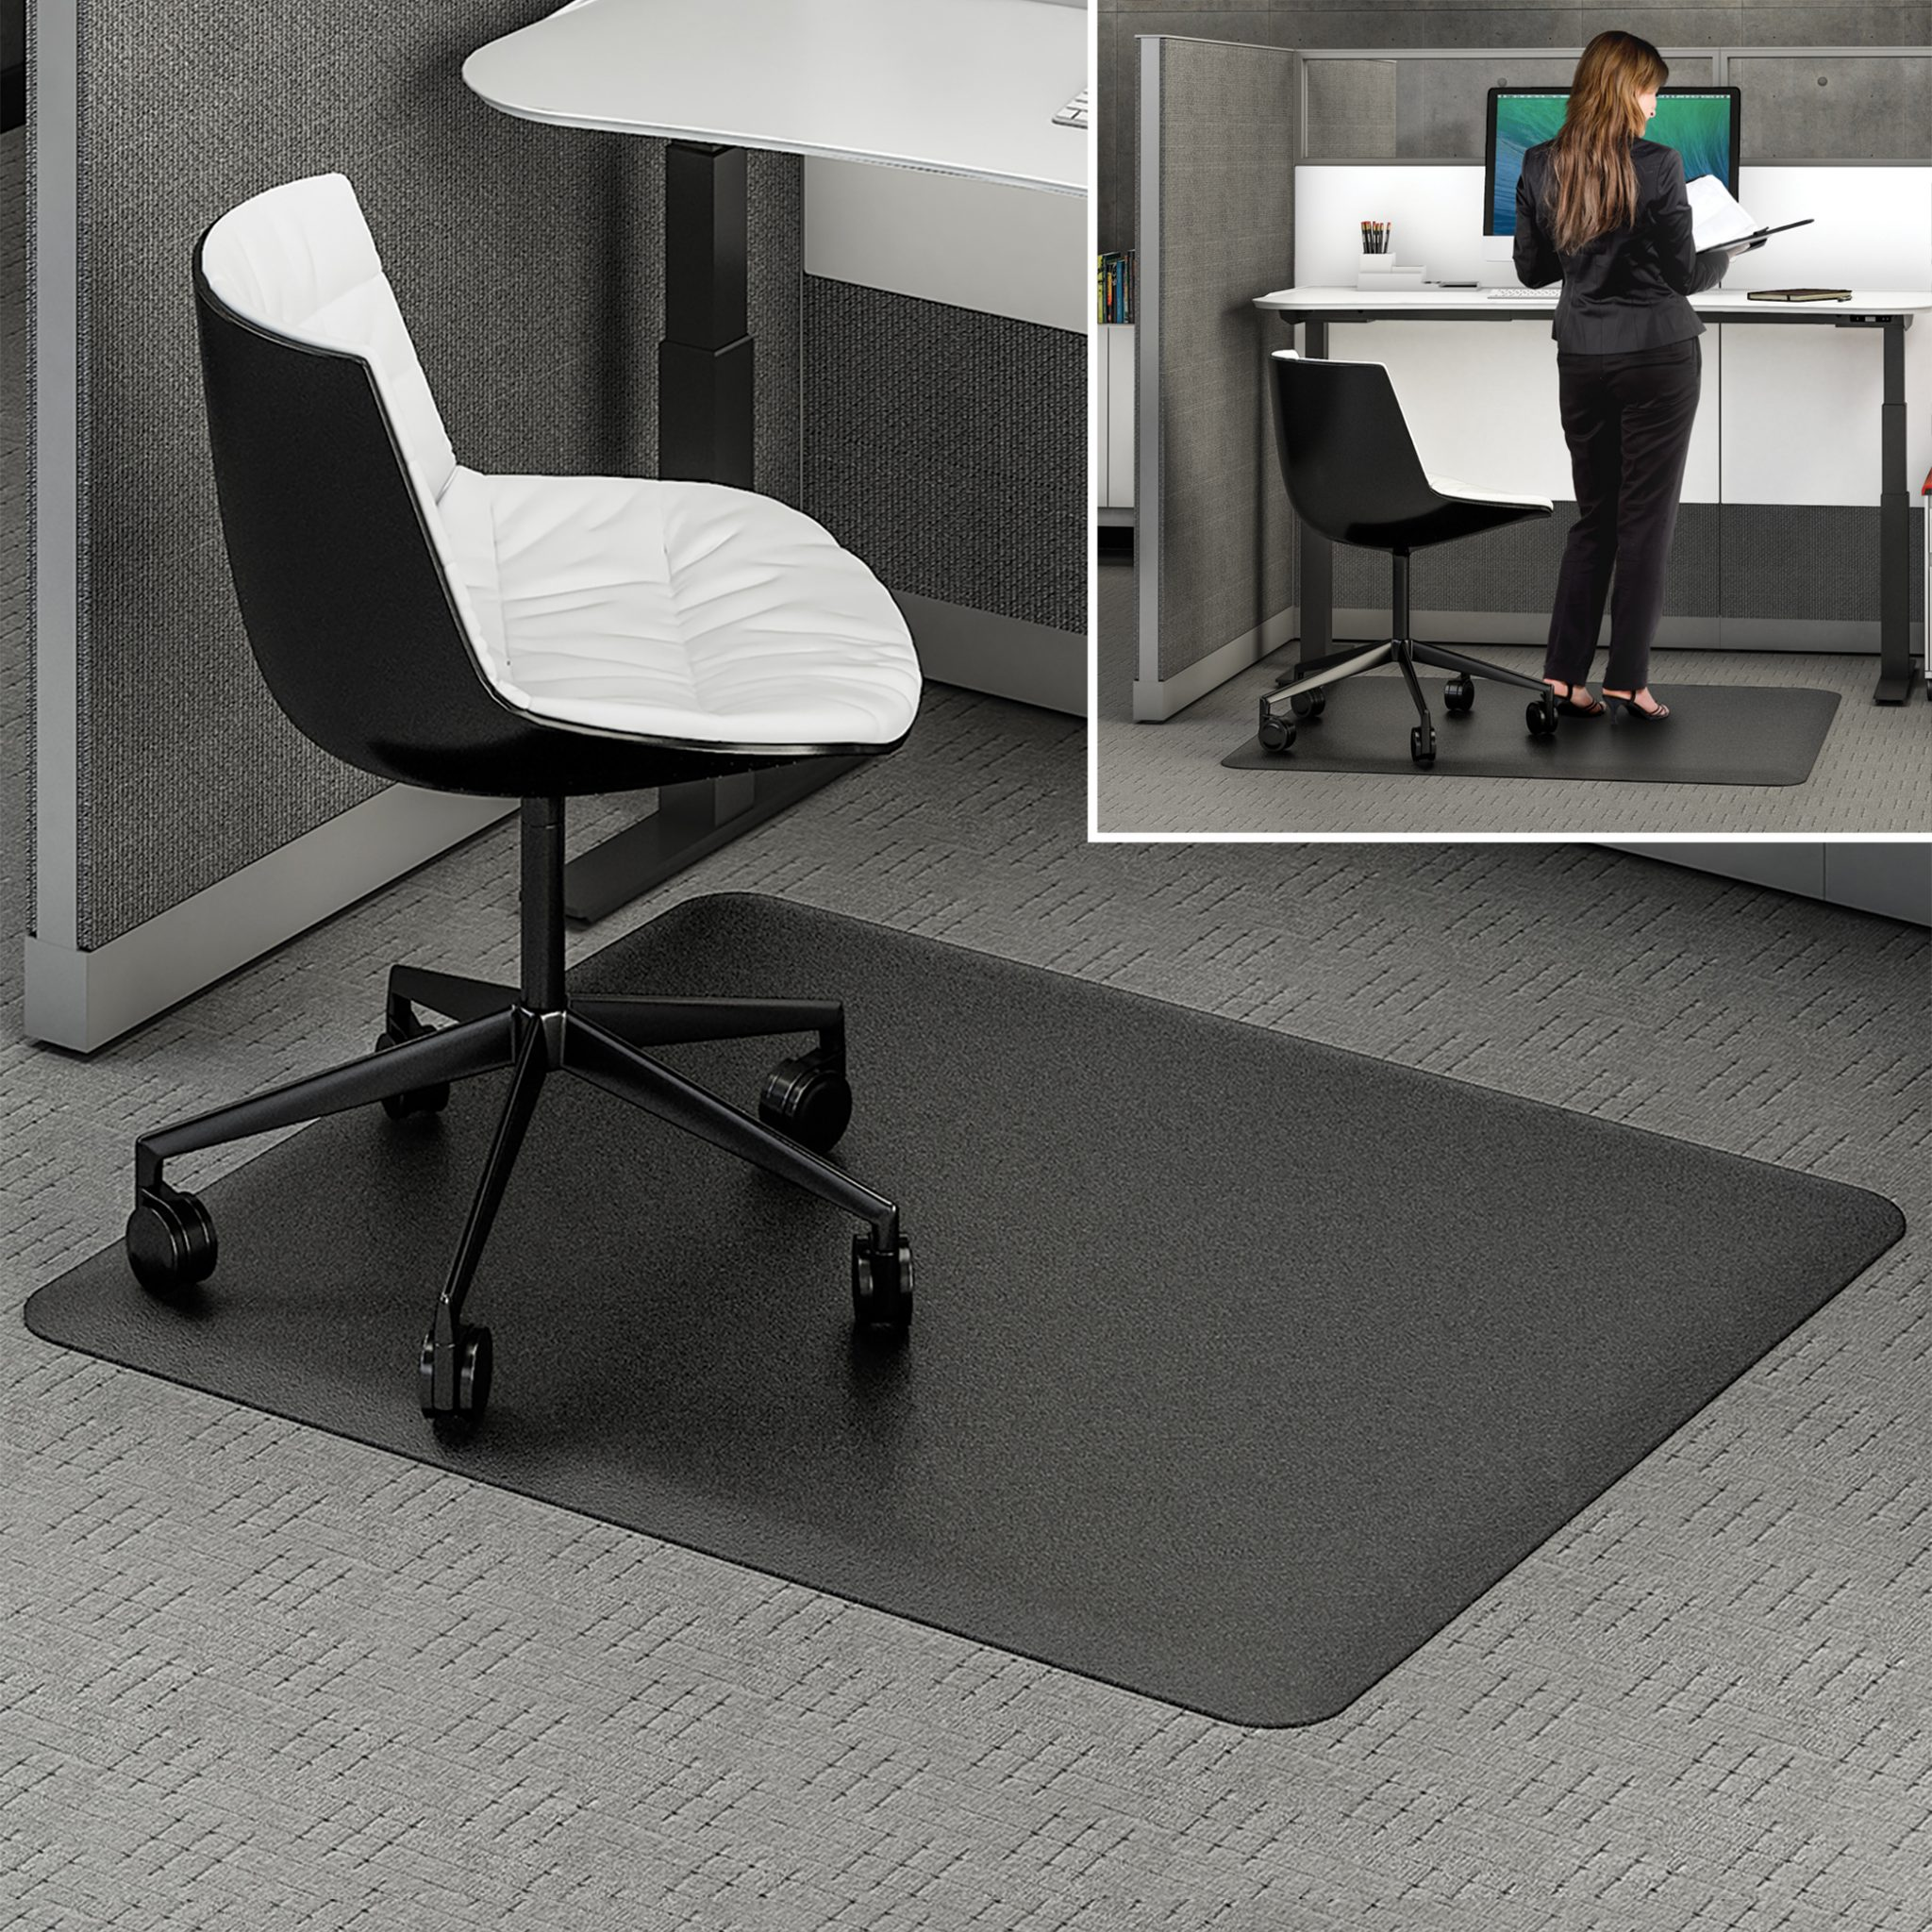 staples com mat ae flat dp office pile floor lip amazon mats carpet products chair